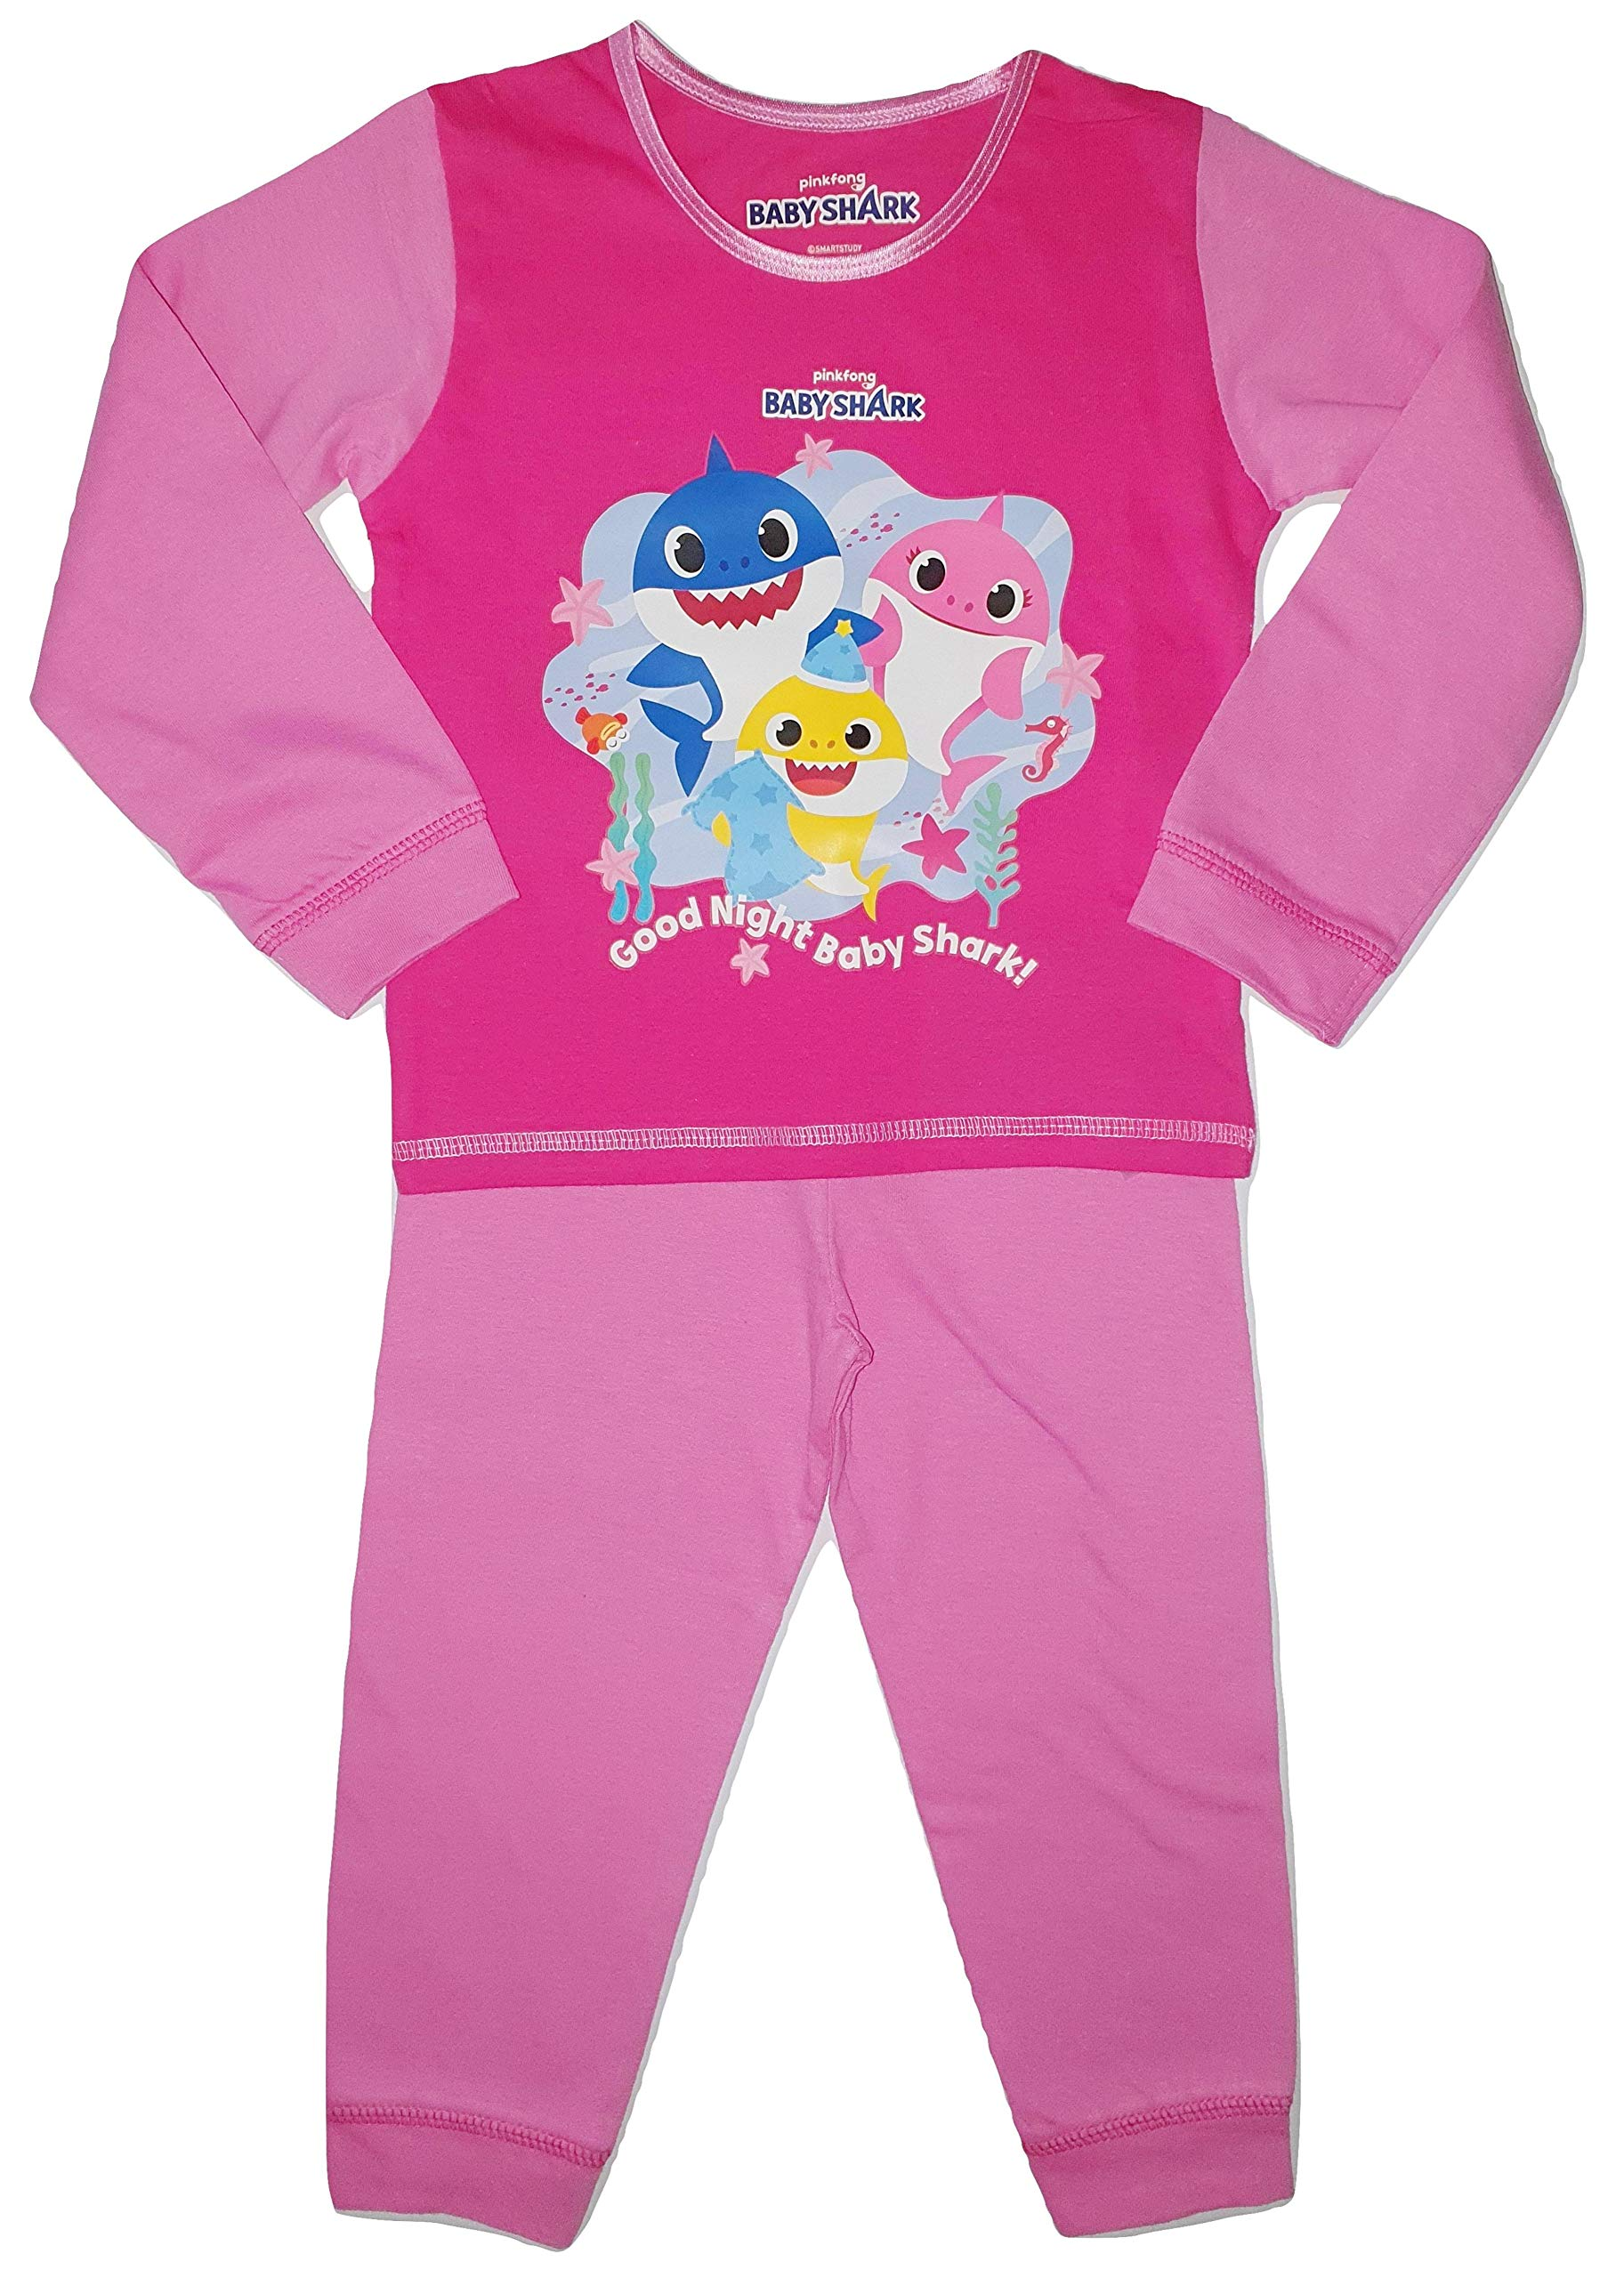 Pinkfong Girls Baby Shark Pyjamas Pjs Ages 18 Months to 5 Years Old